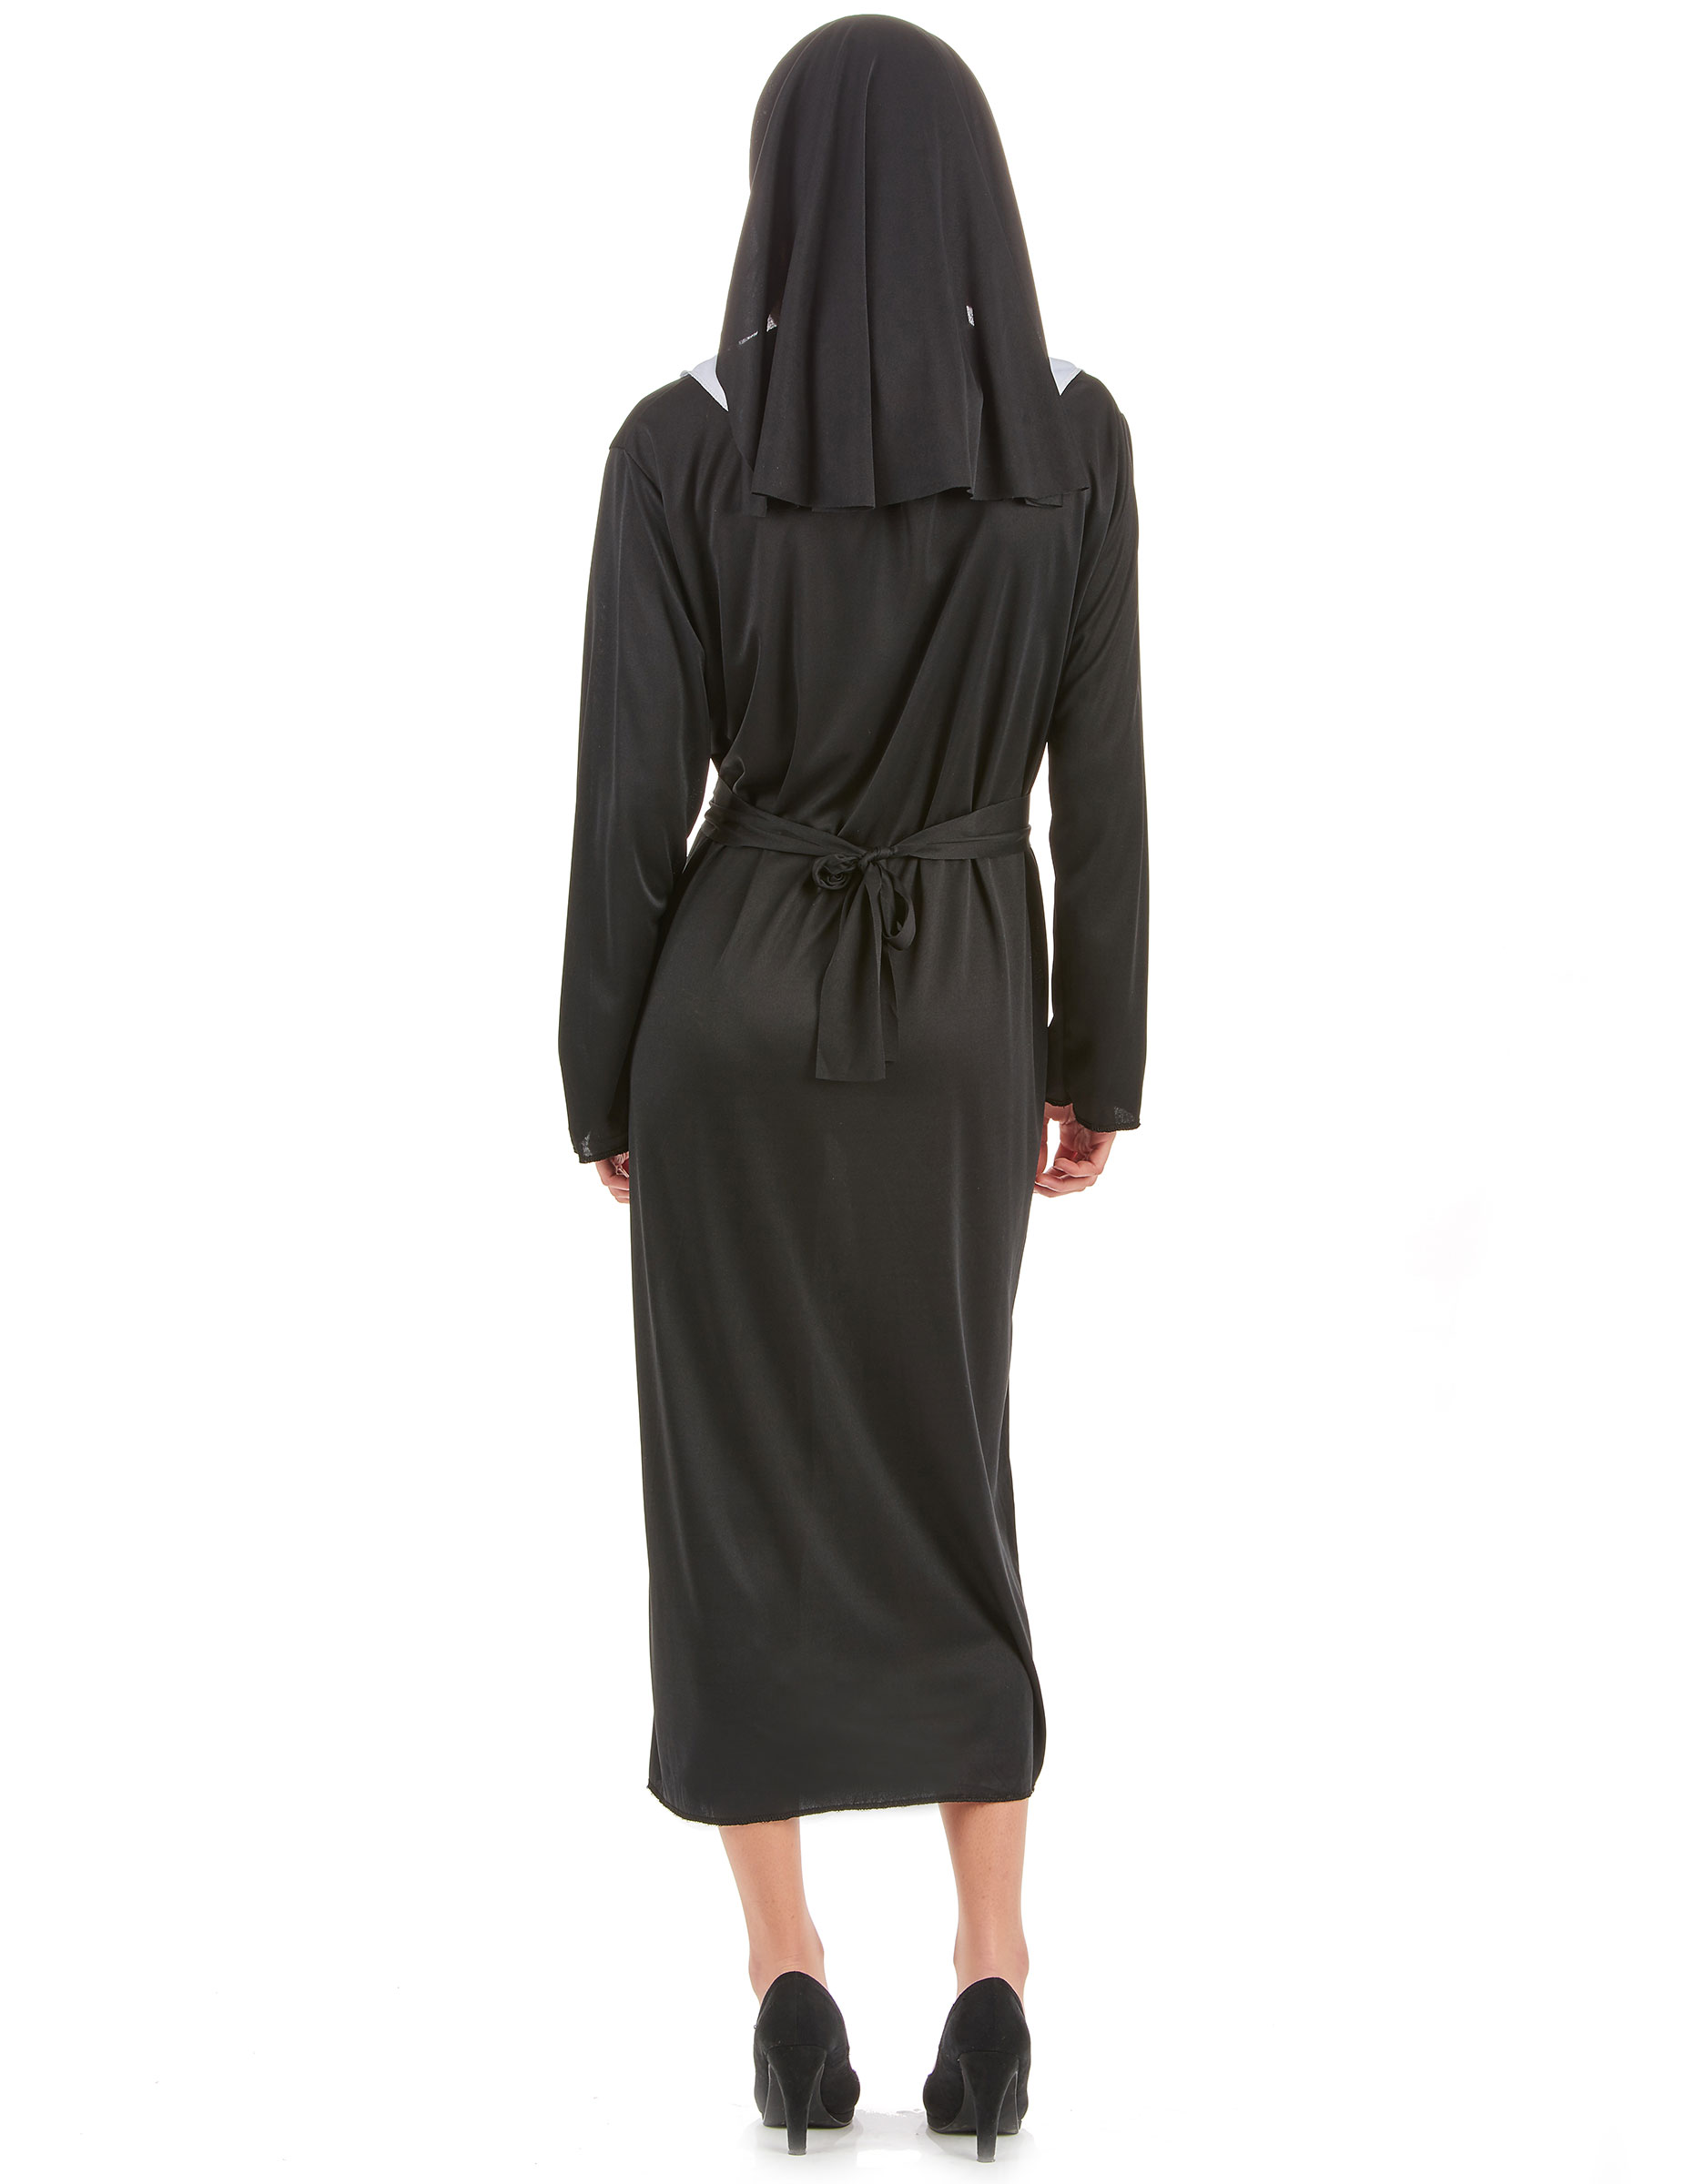 Costume suora donna - Vegaoo.it 53aa2e3a0871